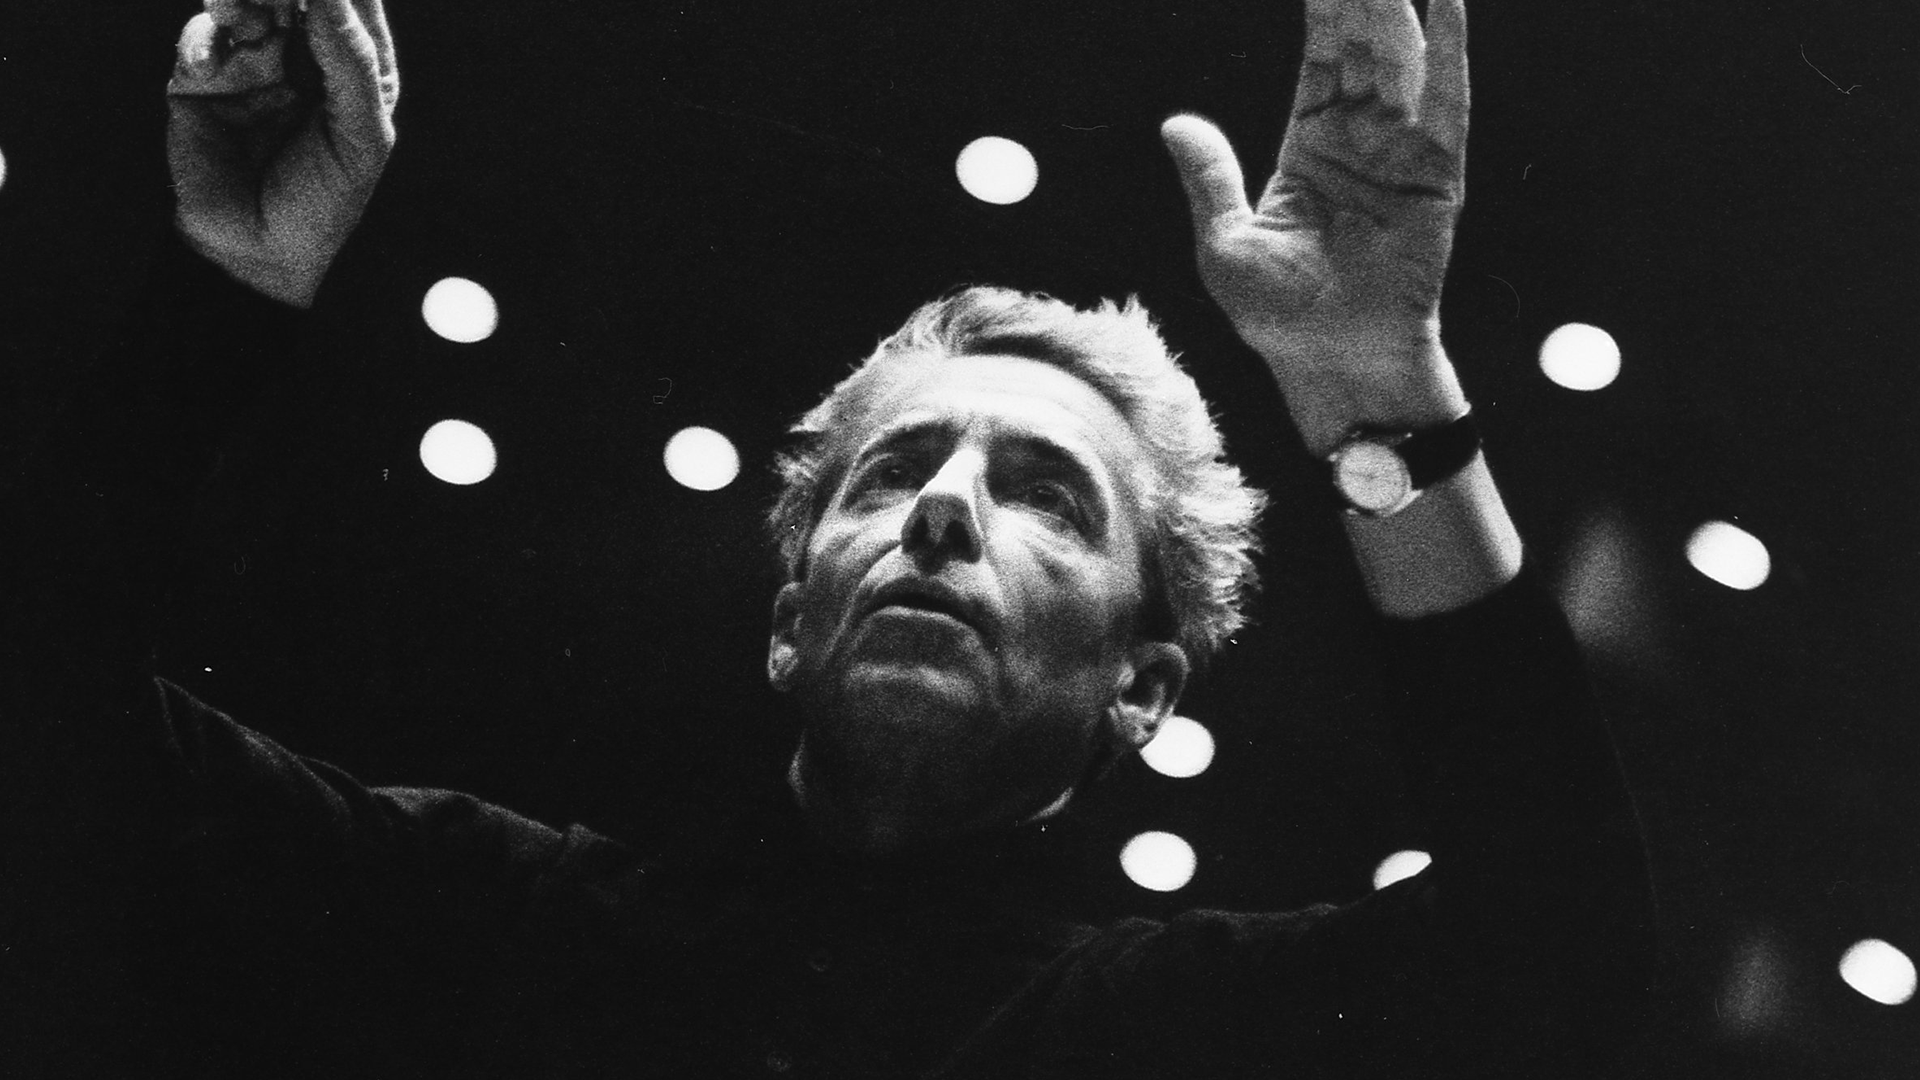 Herbert von Karajan conducts a all-French concert program of Debussy and Ravel